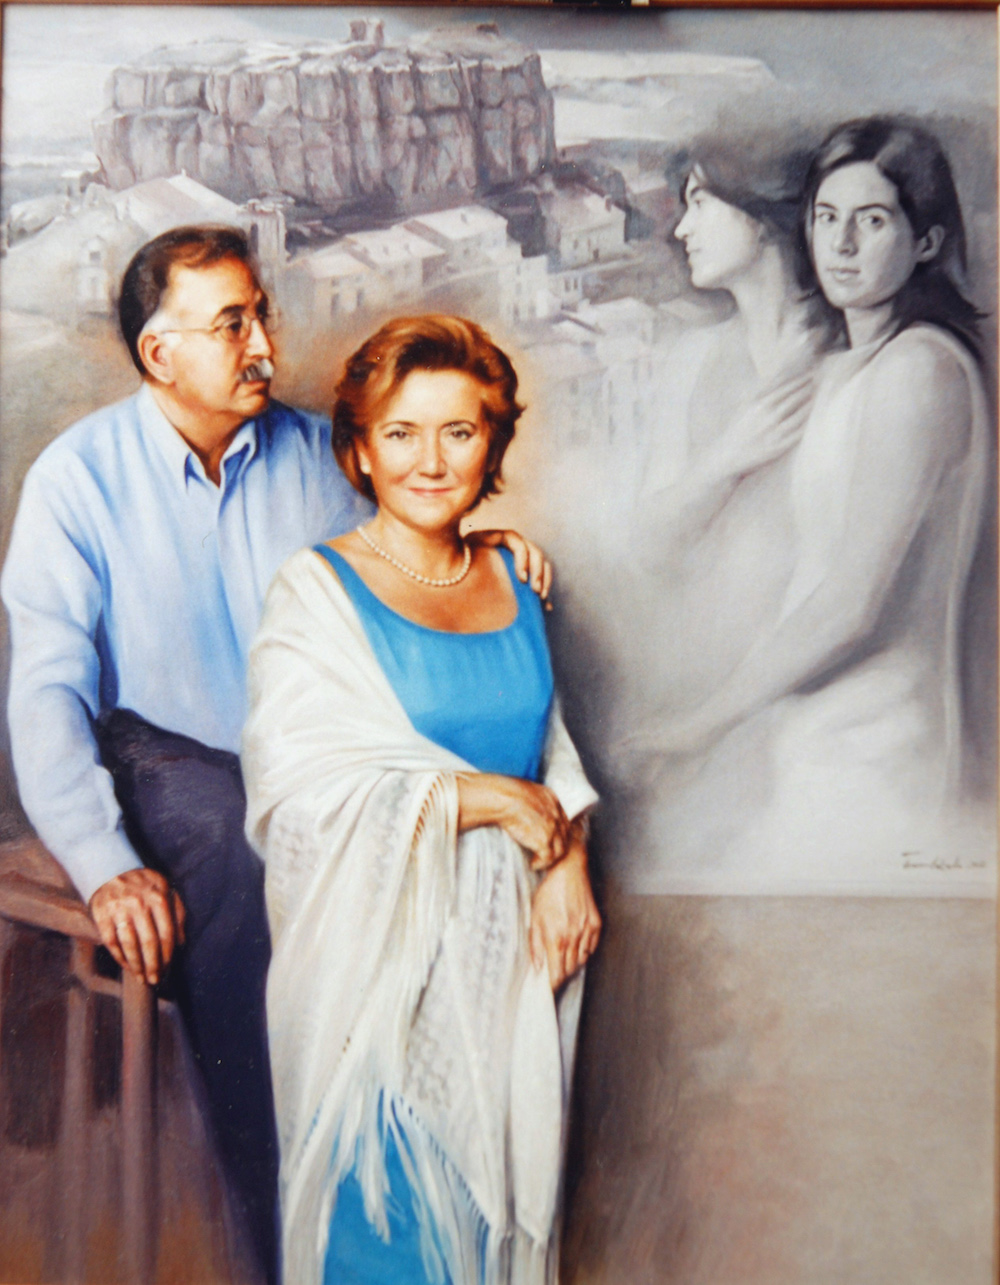 Couple with their daughters as background